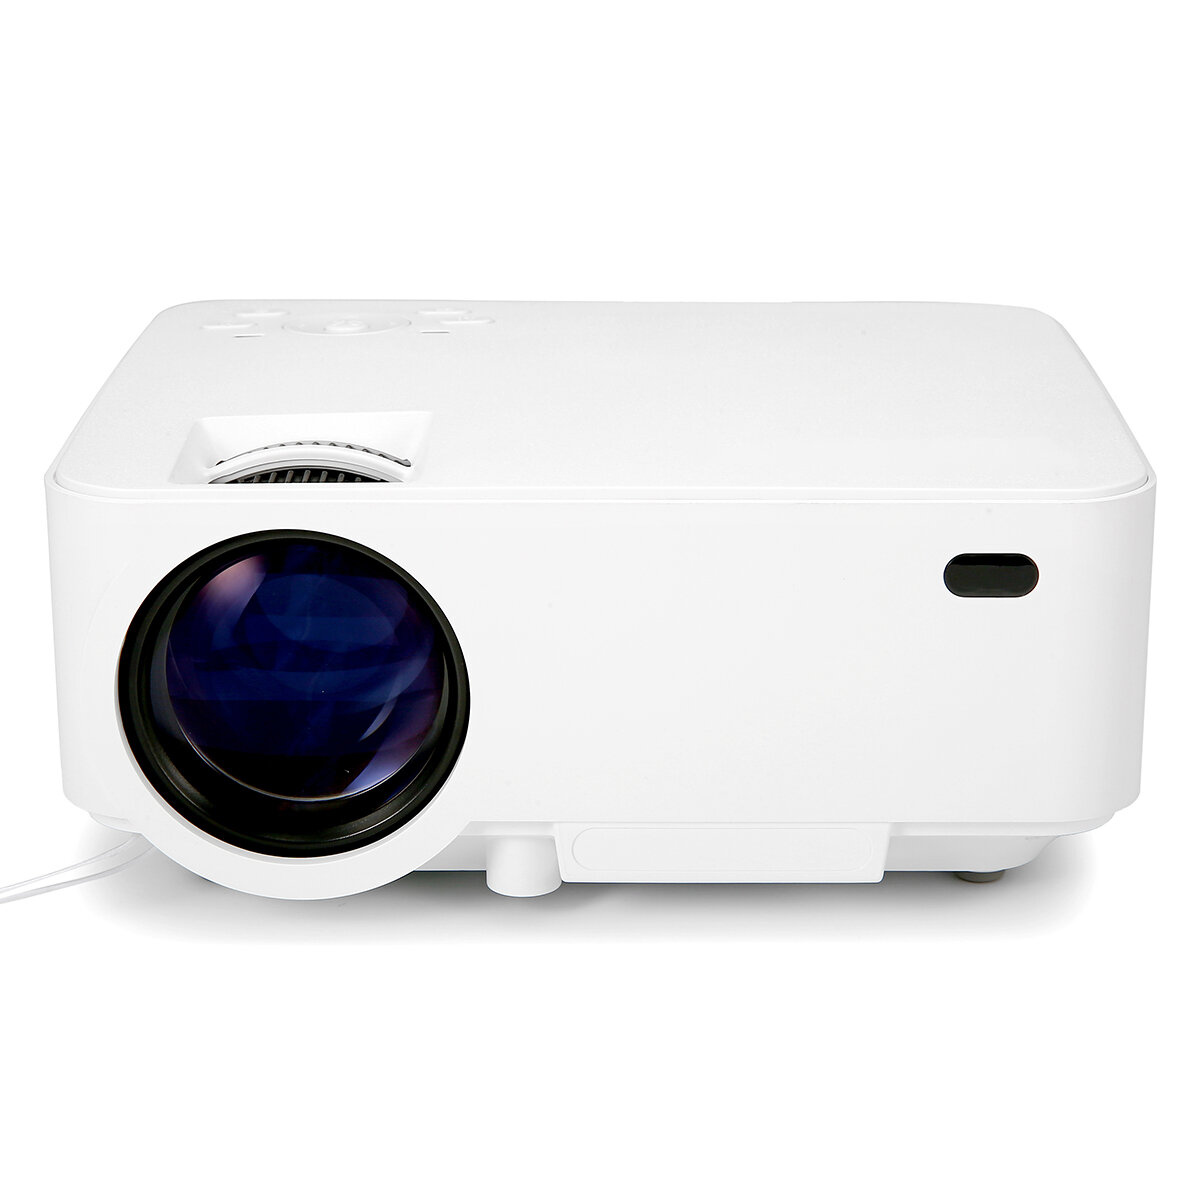 Mini 4 Inch Portable Project Home Theater Video Projector Support T20 1080p Lcd To Watch Sports Matches Or Movie For Family Or Party Sale Banggood Mobile Arrival Notice